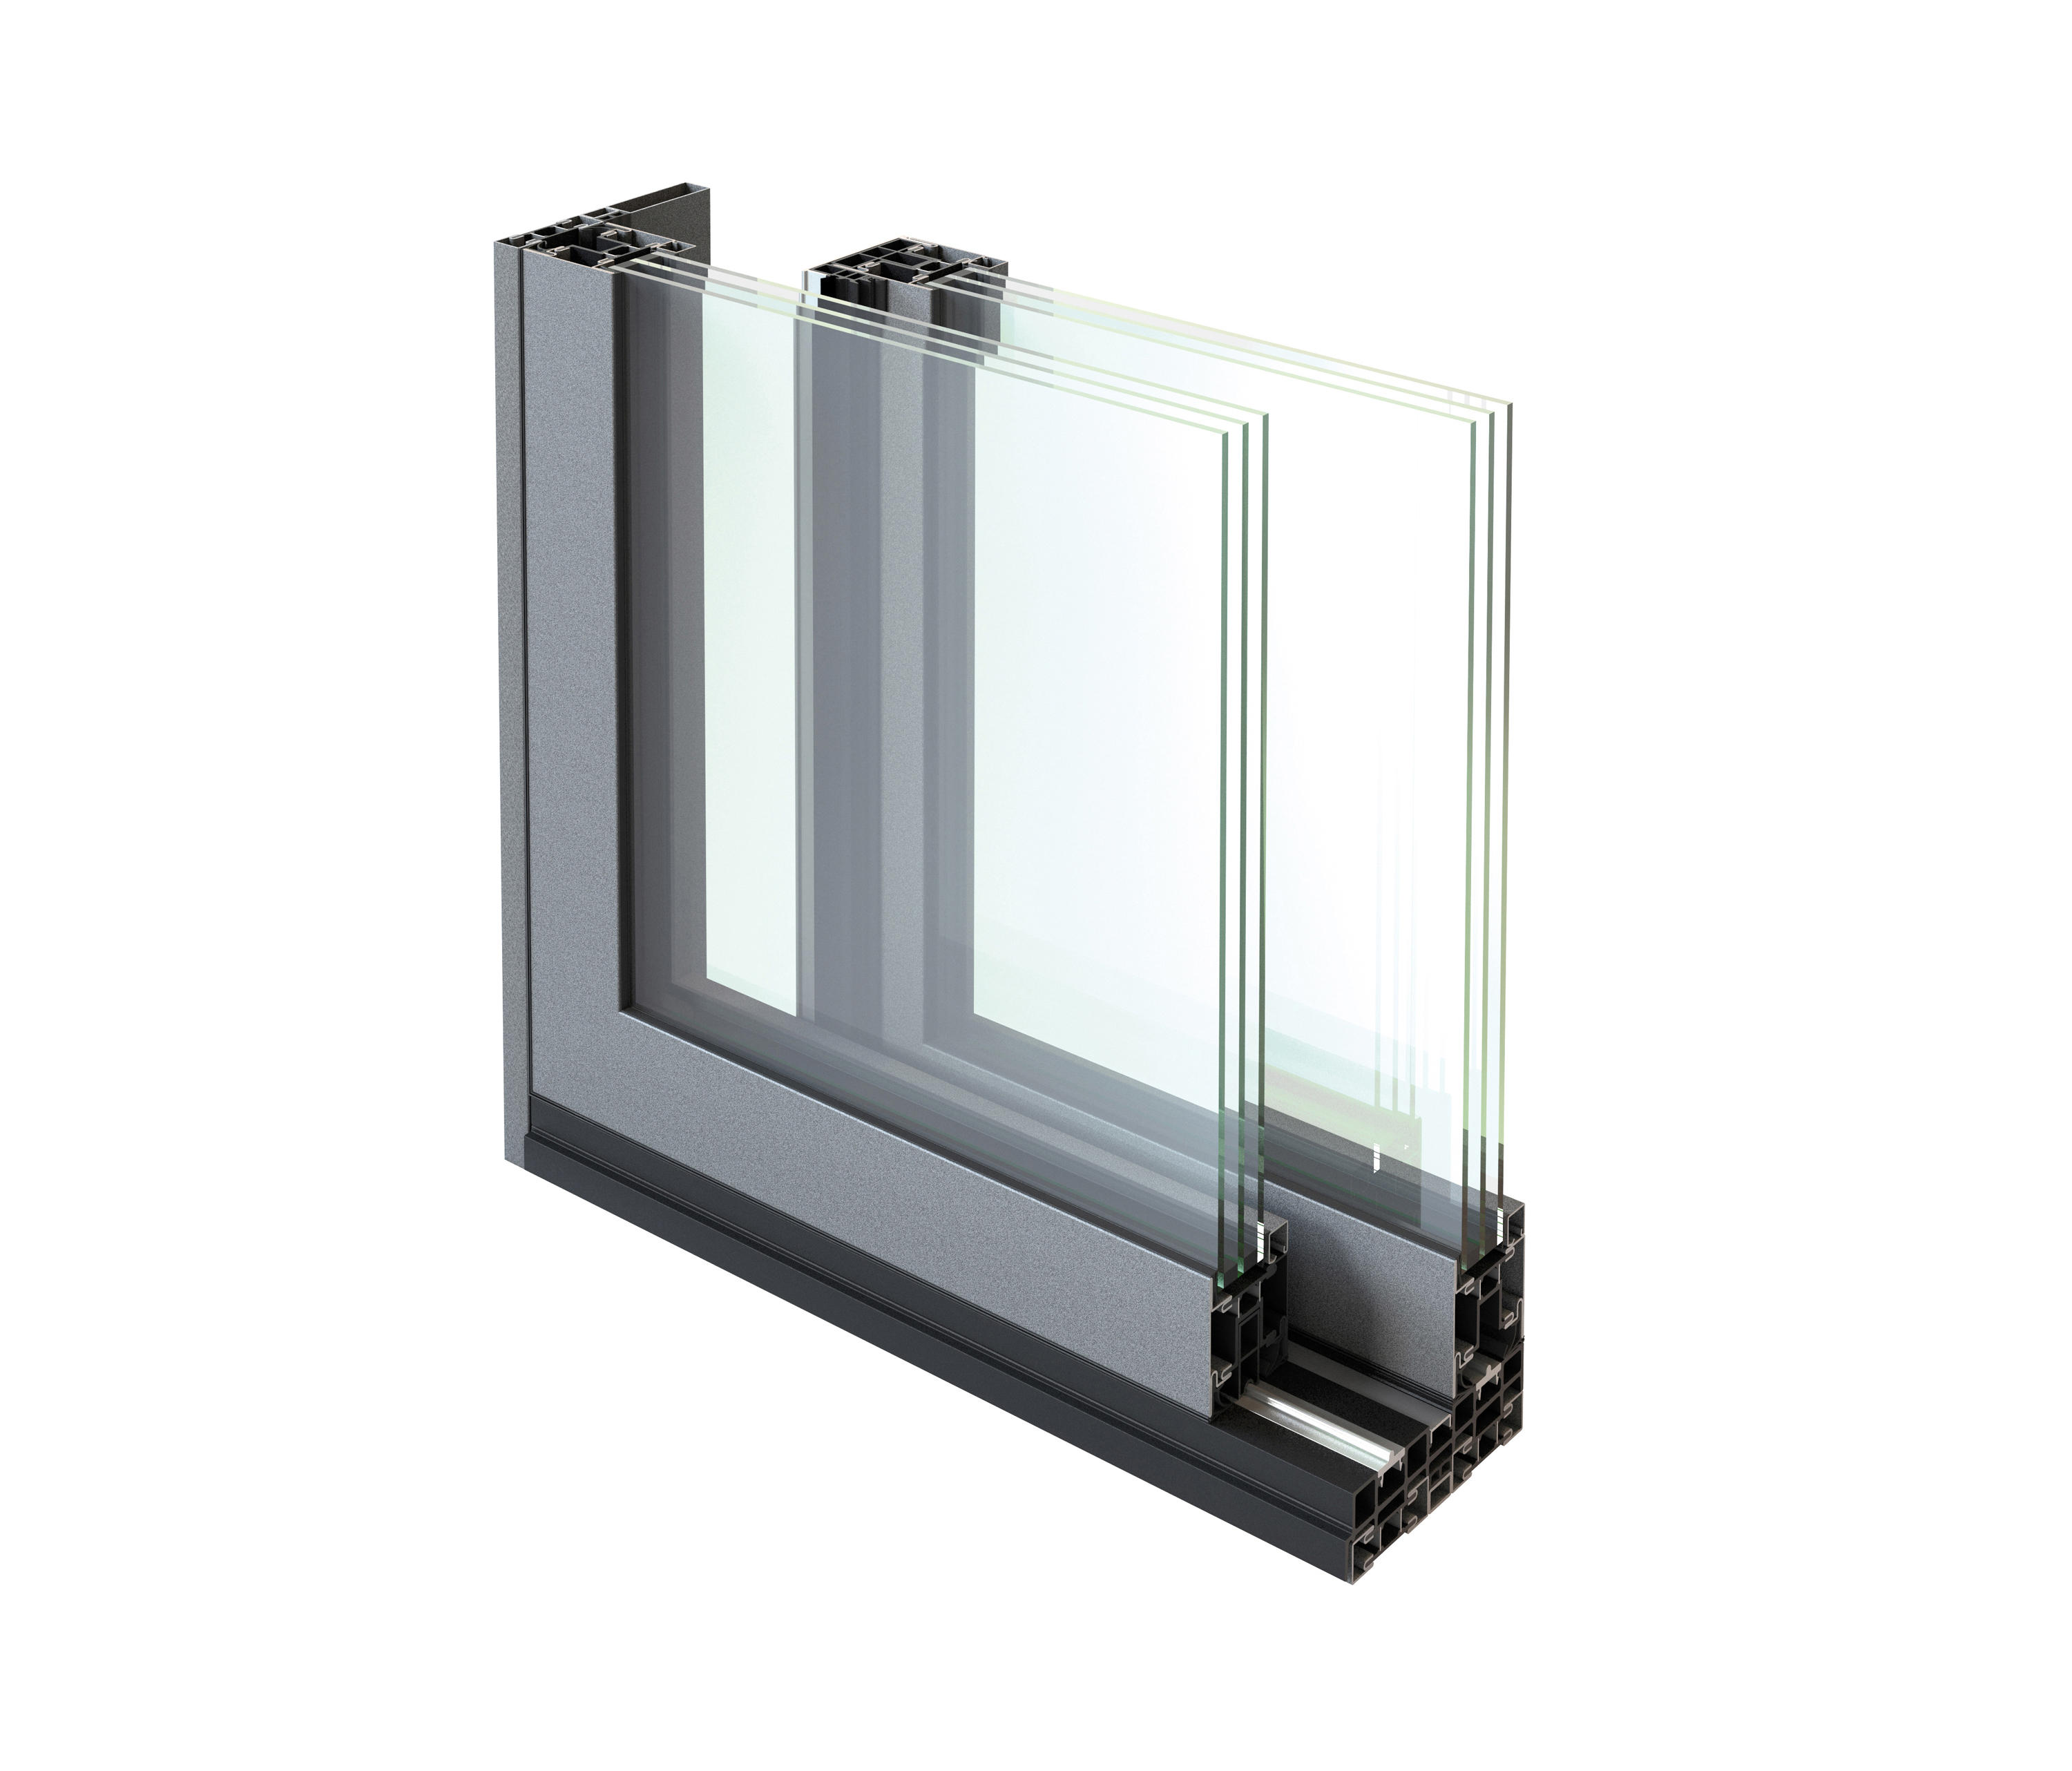 Janisol lift-and-slide door by Jansen | French doors  sc 1 st  Architonic & JANISOL LIFT-AND-SLIDE DOOR - French doors from Jansen | Architonic